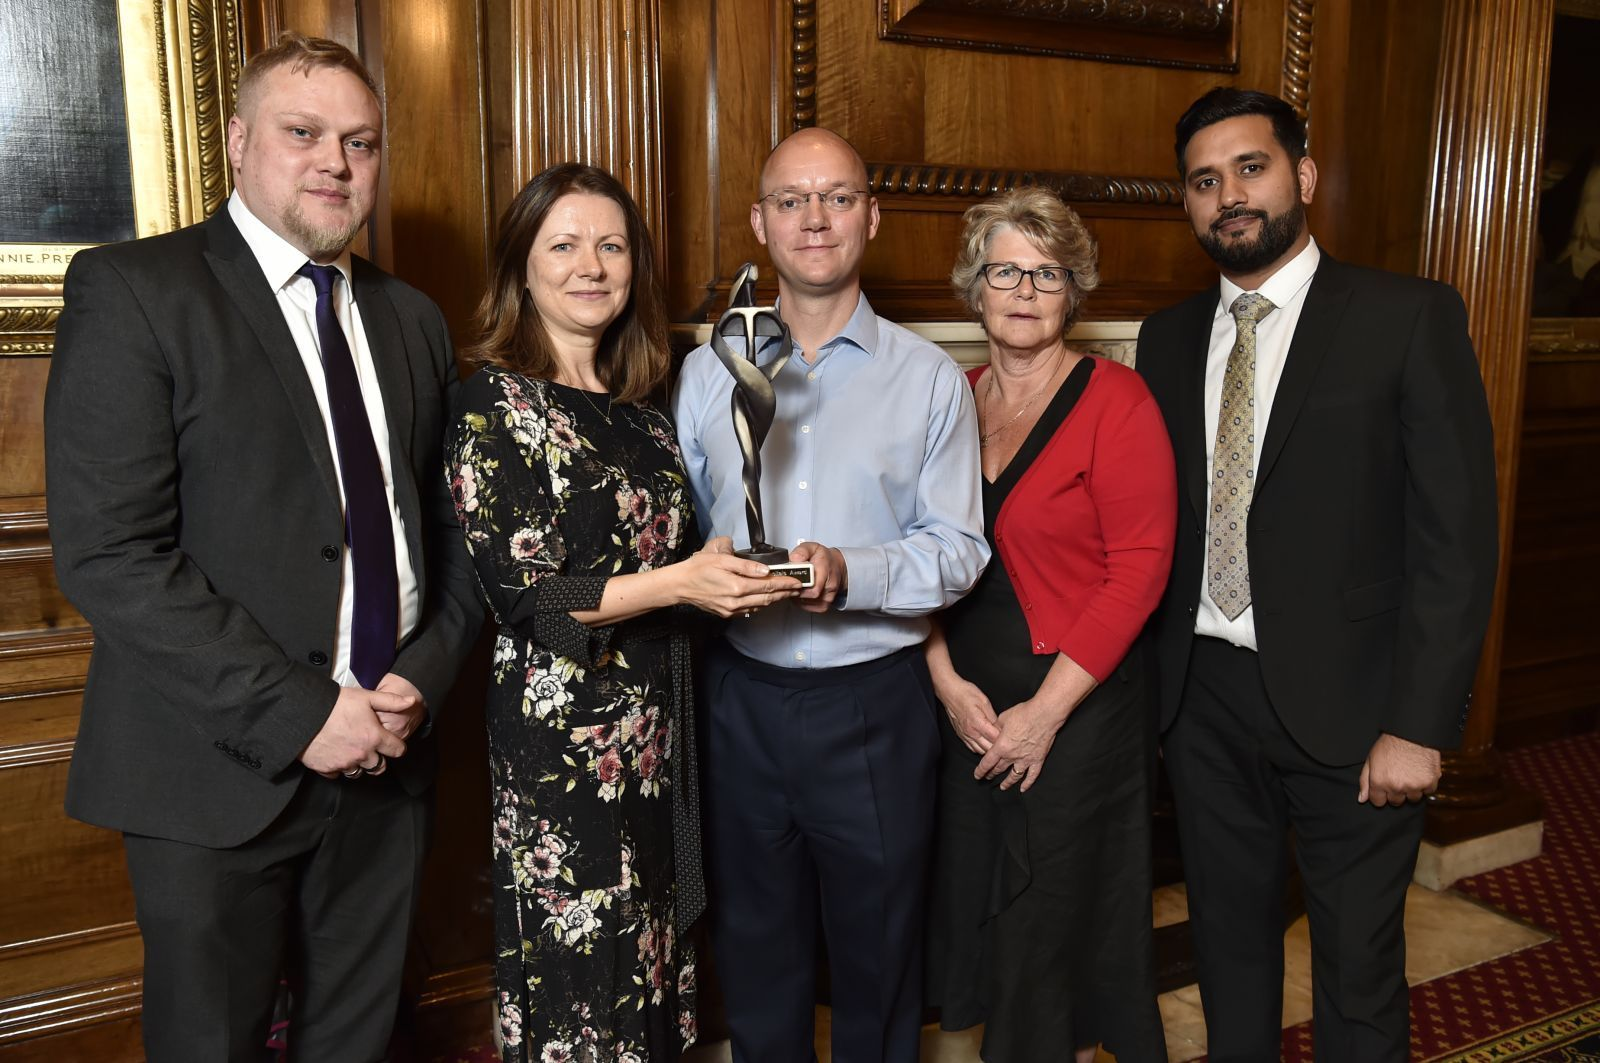 RECOGNITION: Receiving the award on behalf of Dorset County Hospital NHS Foundation Trust are, from left, estates programme manager Anthony Brewis, diabetes nurse specialist Agnes Graja, senior midwife Linda Deadman and head of workforce resourcing Ikram